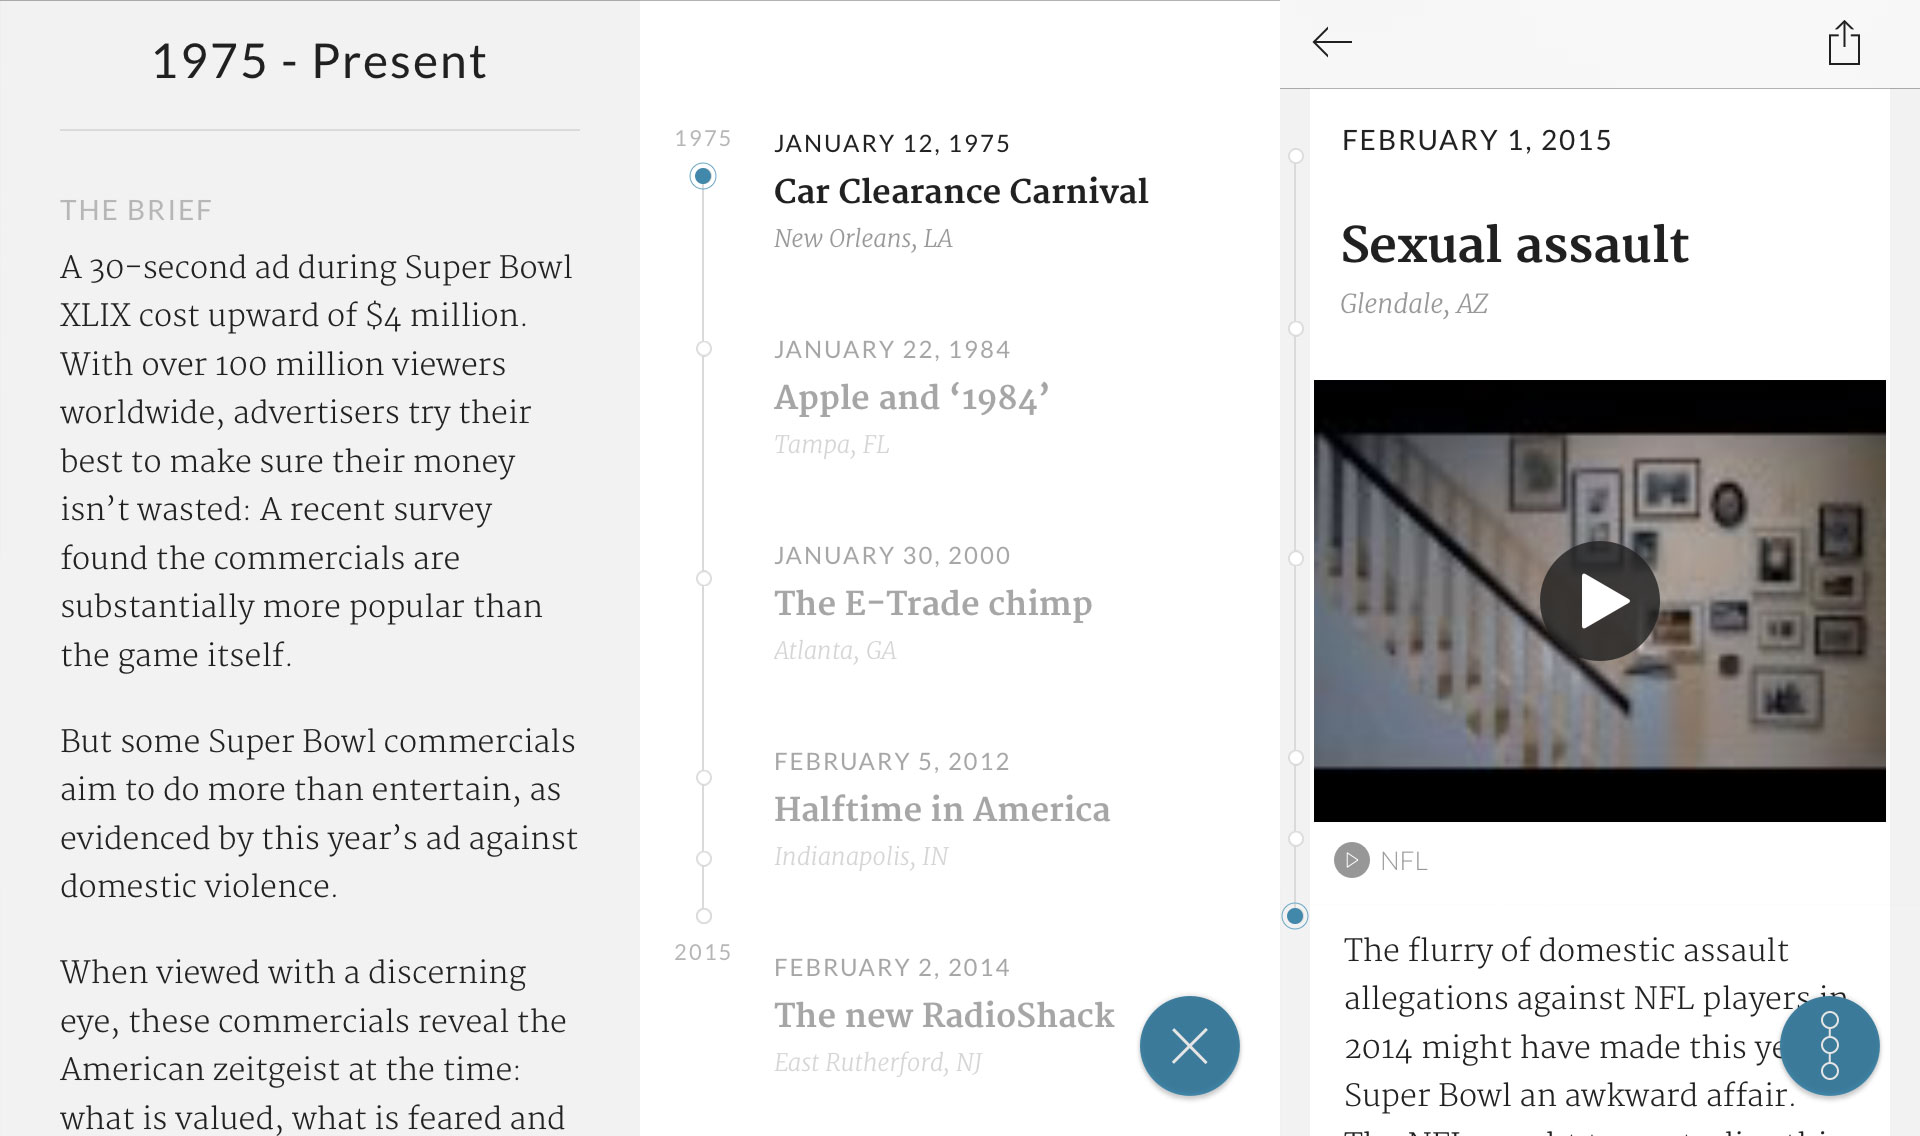 Screenshots from an individual story page in Timeline. Left: The brief topic summary; Middle: The timeline view; Right: The in-depth view